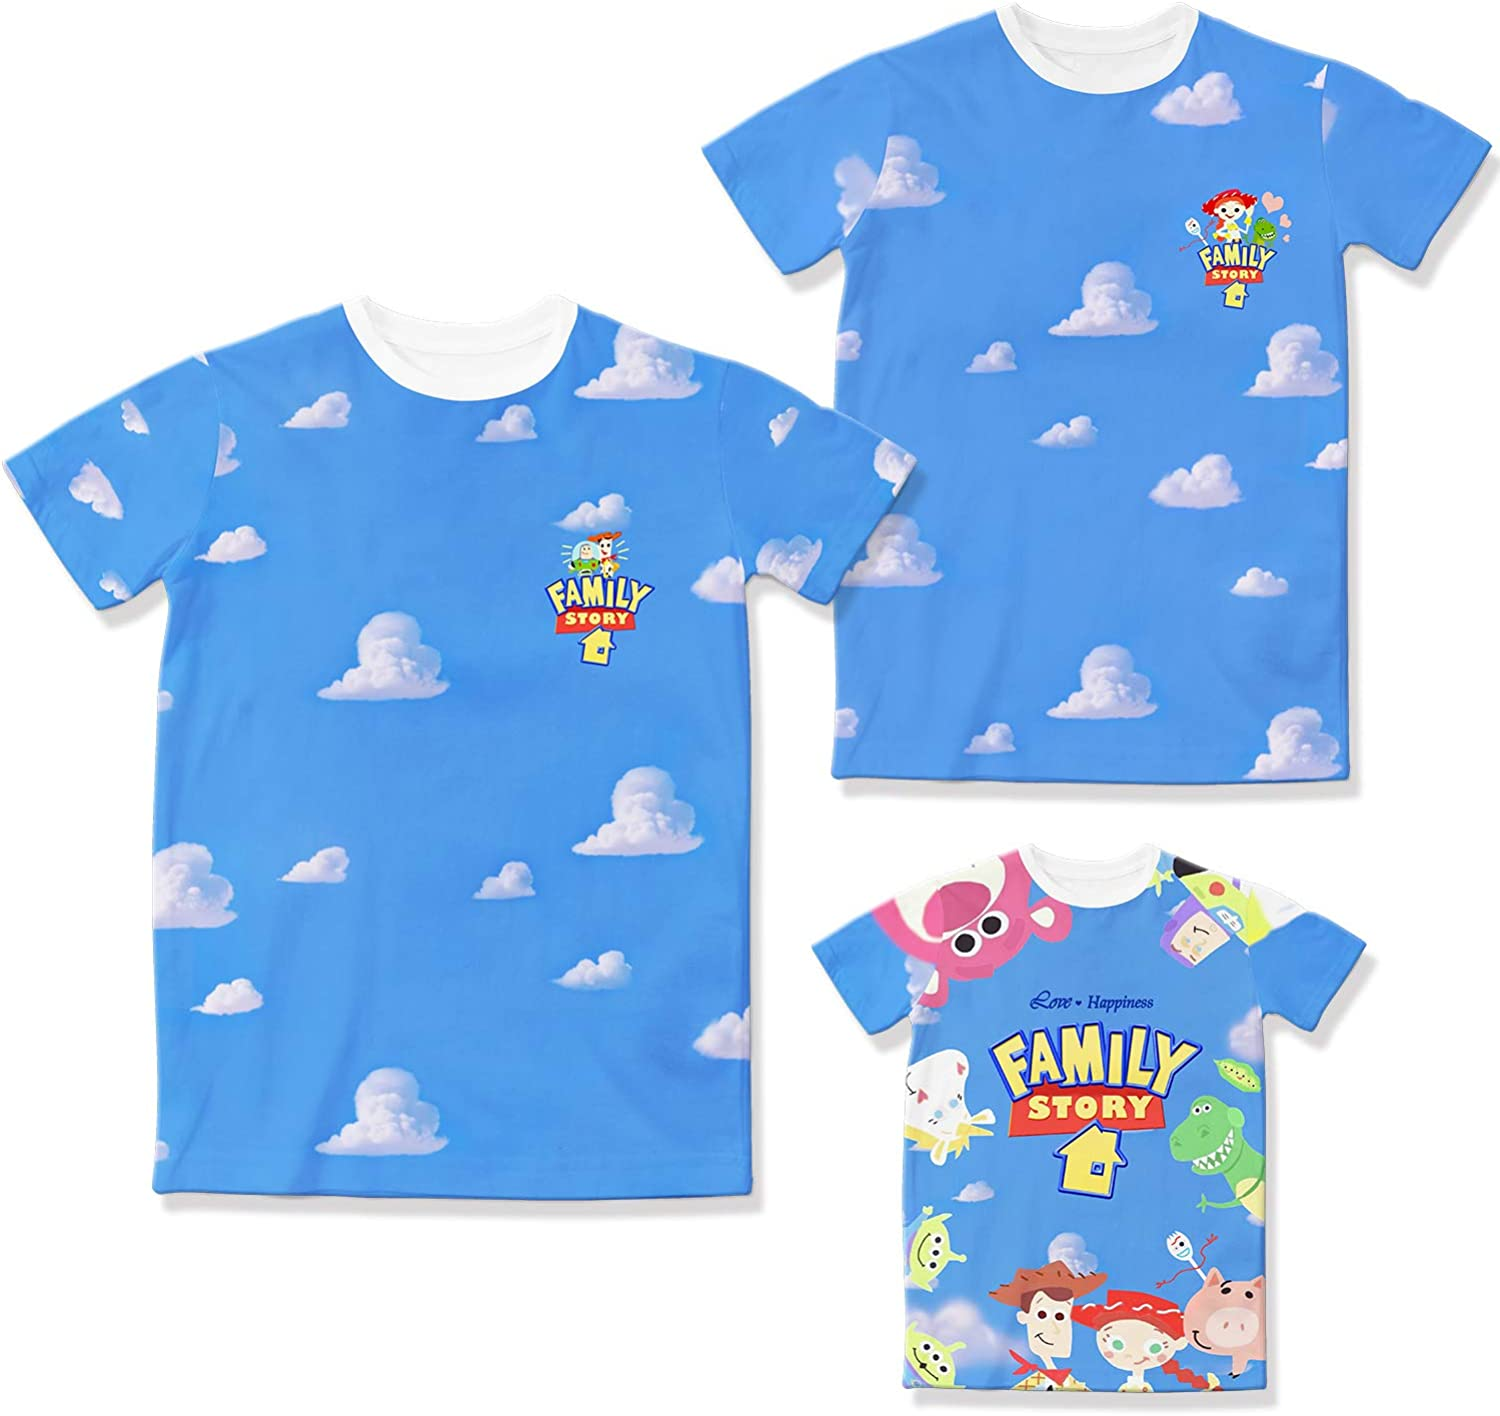 Amazon Com Toy Story 4 Family T Shirts Blue Sky Cloud Original Cartoon Logo Design Father Mother Kids Tshirts Clothing